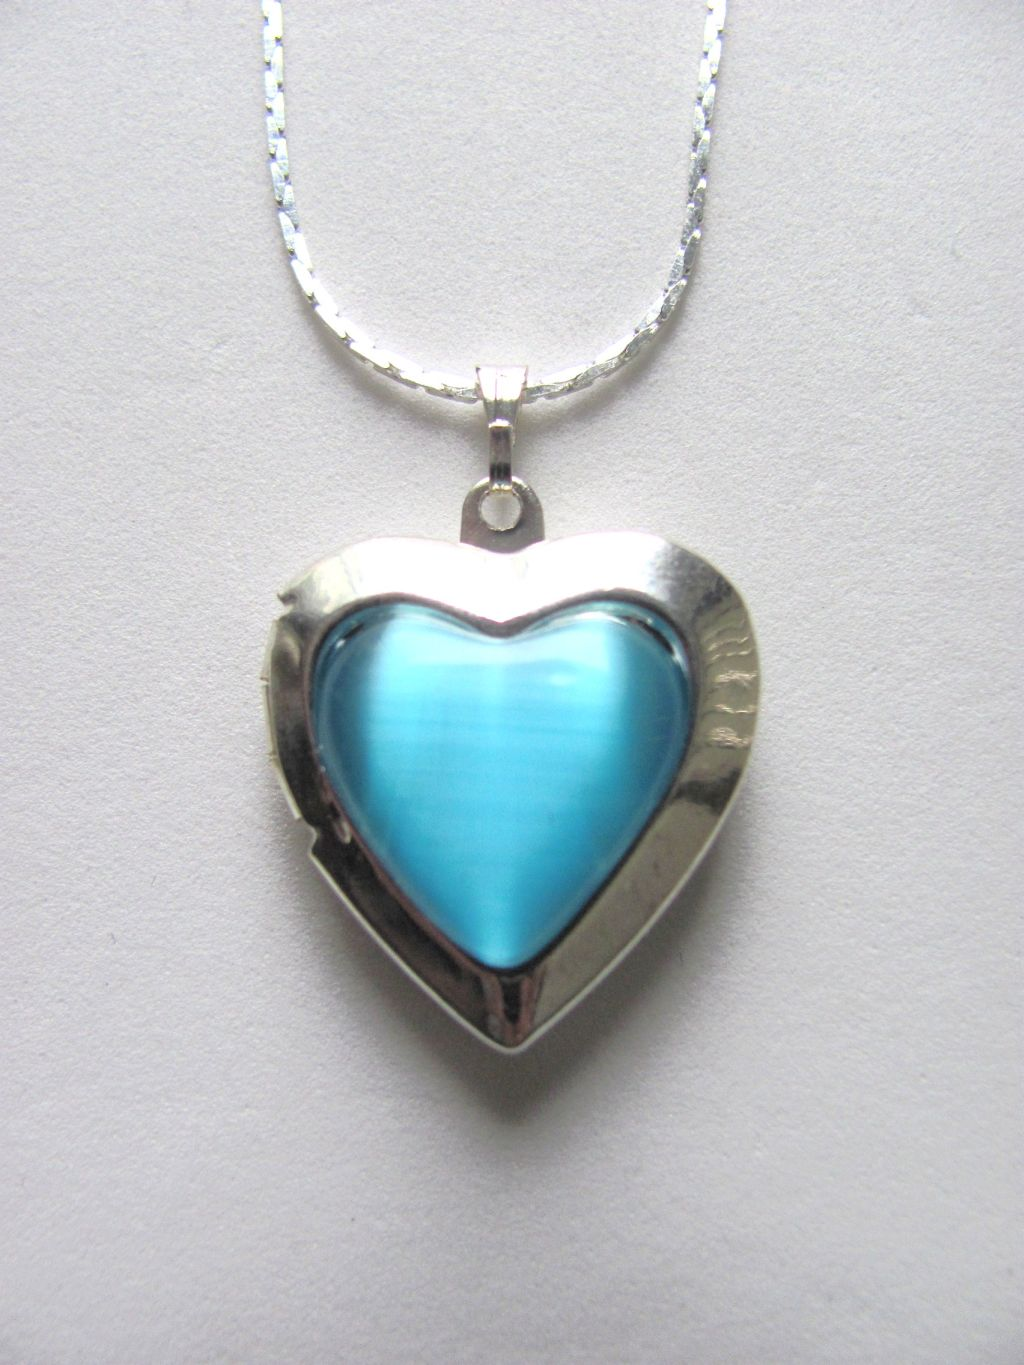 Turquoise Blue Heart Locket Photo Pendant Necklace, Silver Tone